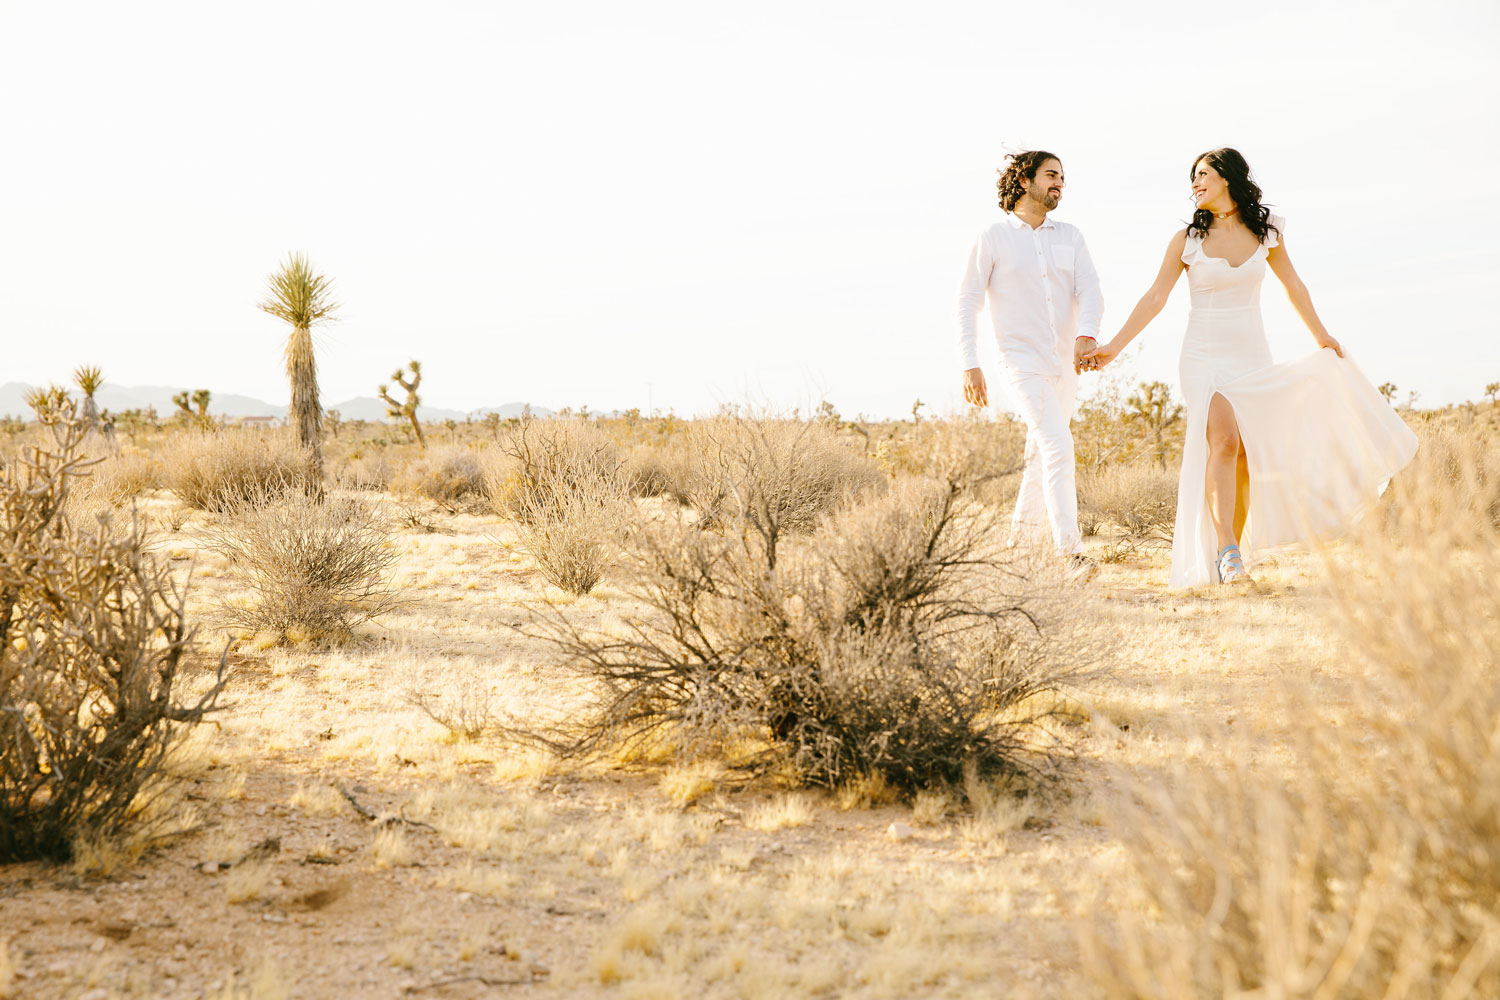 Desert engagement shoot ideas Joshua Tree all white outfits